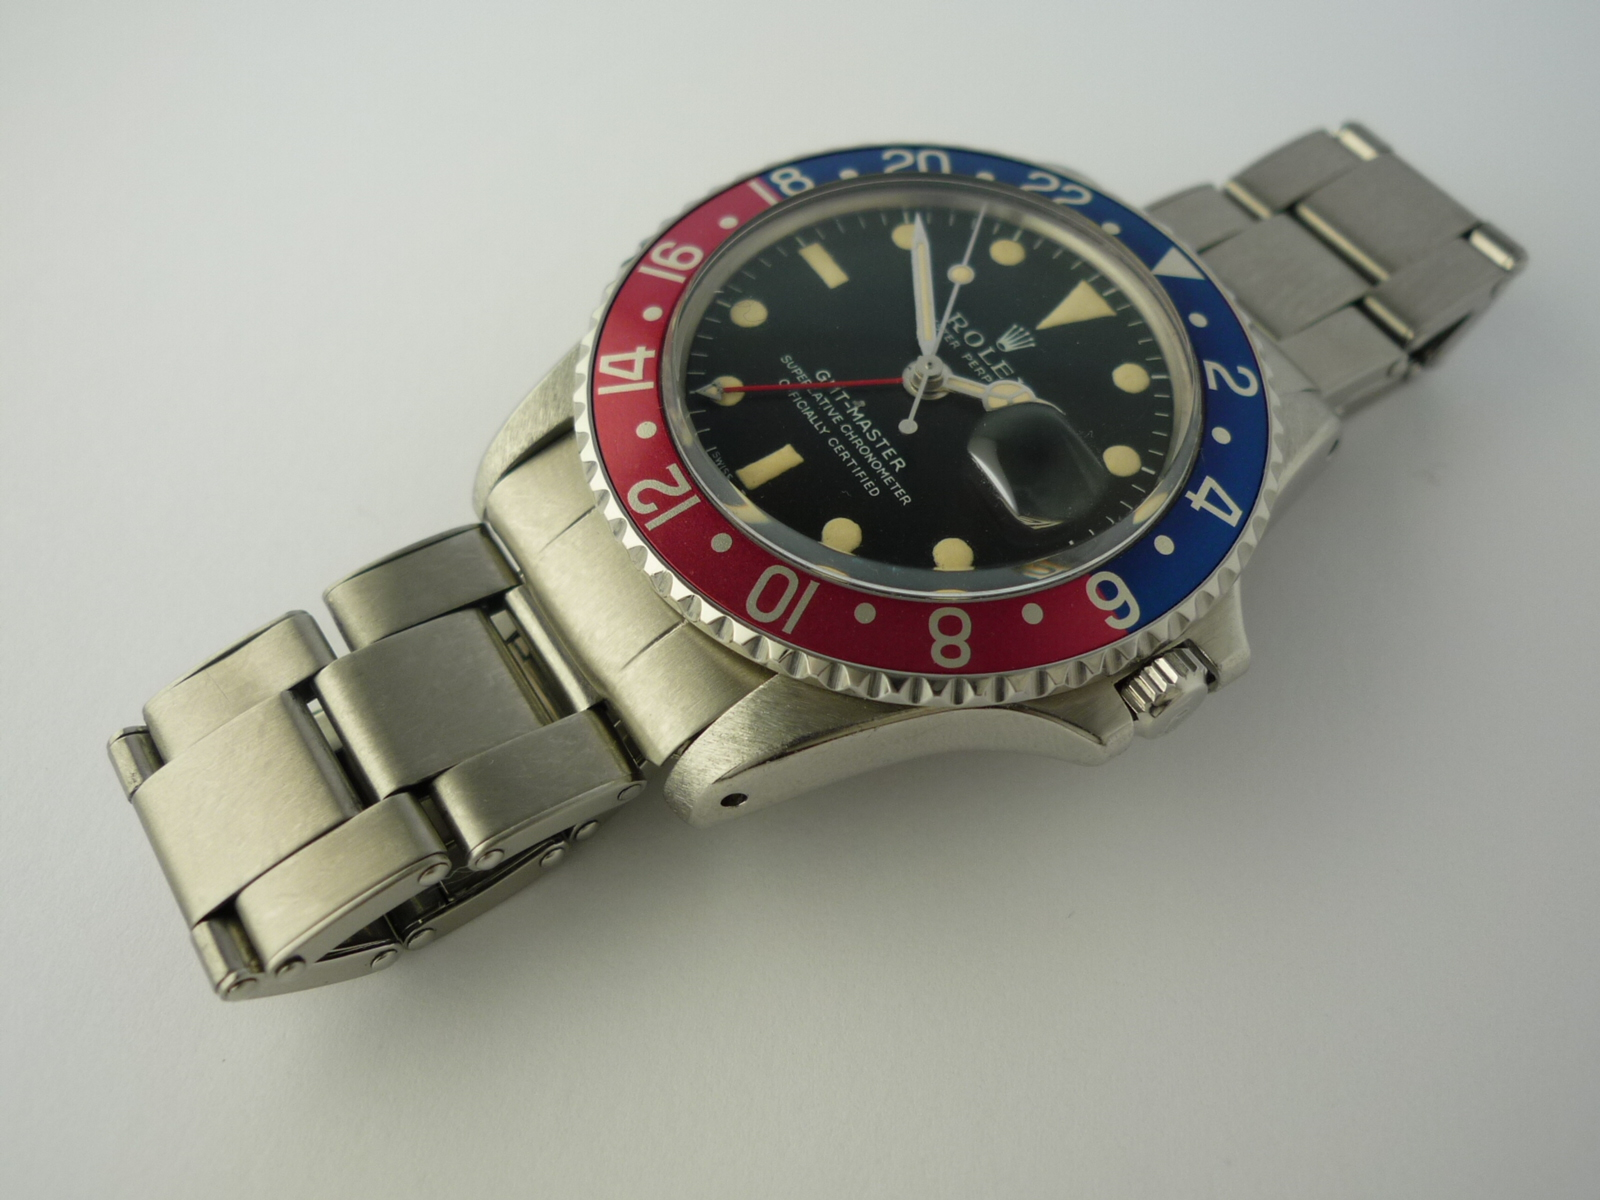 Rolex Oyster Perpetual GMT Master ref 1675 (1967) B & P